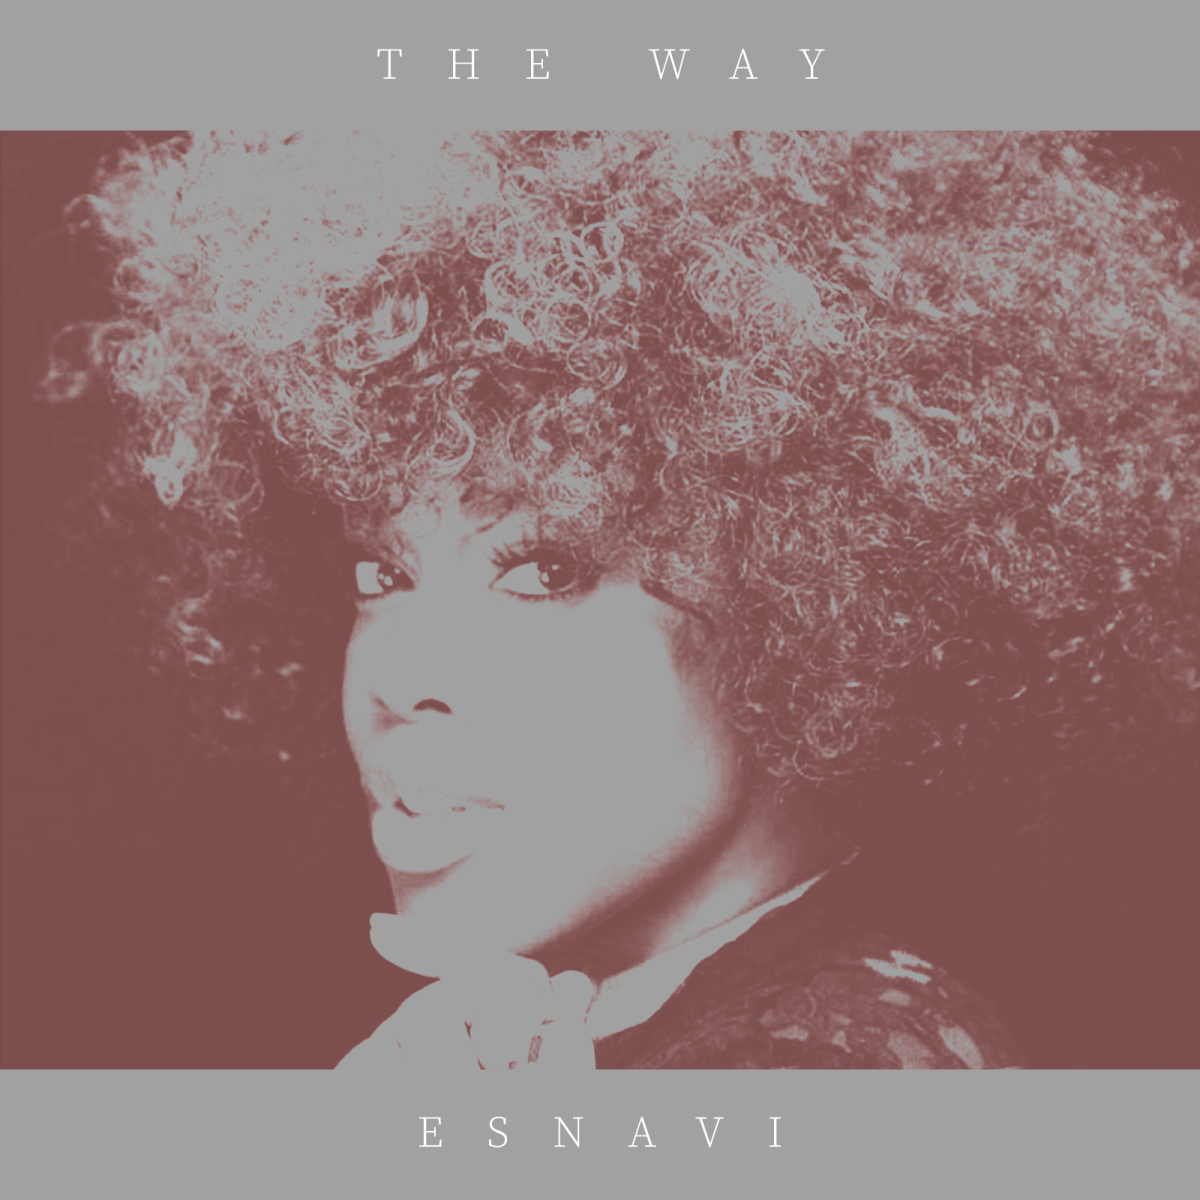 Profile of Songwriter Esnavi and a Q&A With the Artist